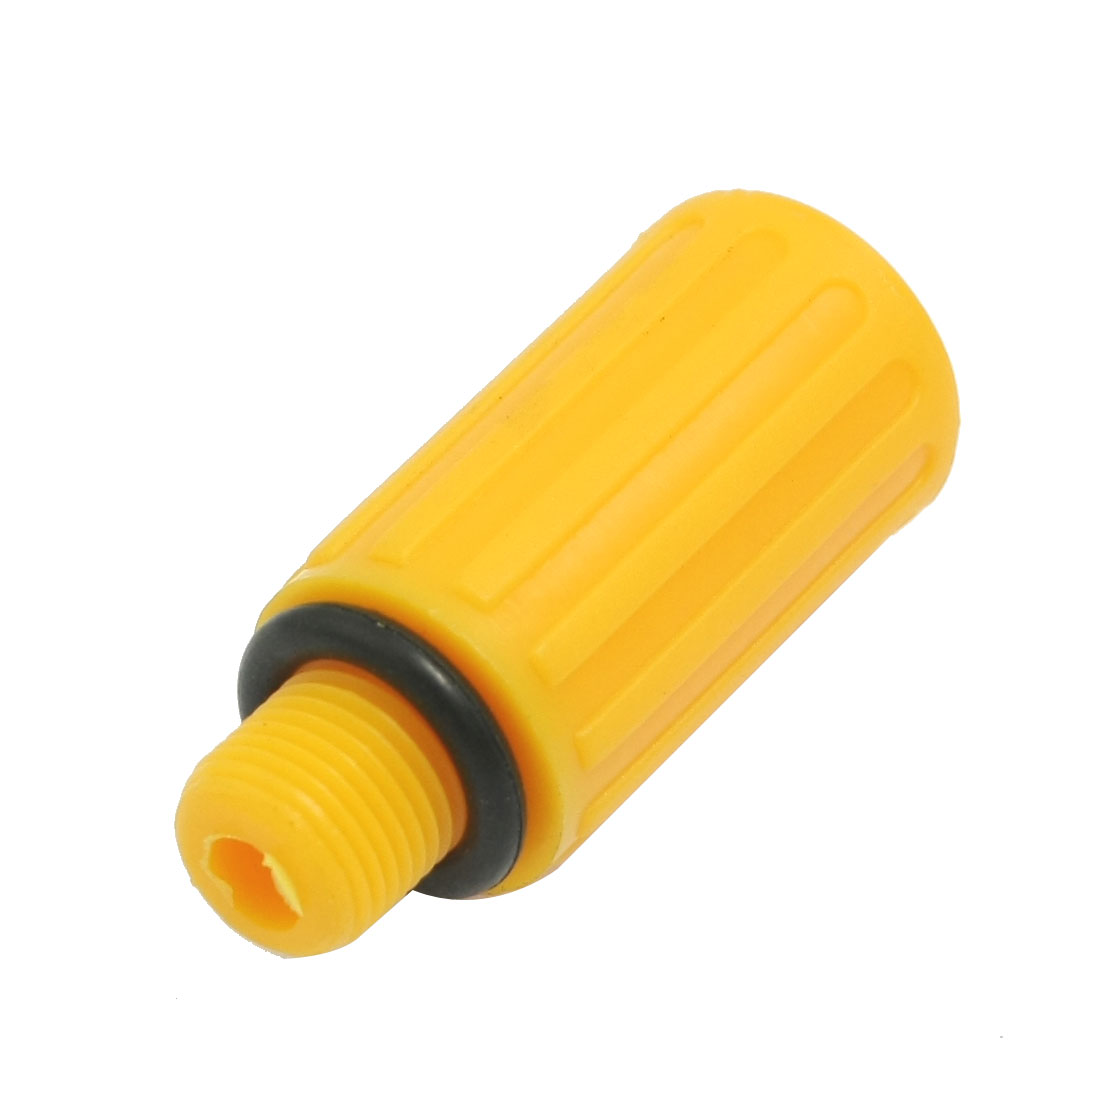 "Noise Reducing Orange Plastic Air Pneumatic Exhaust Muffler Silencer 1/4"" NPT"